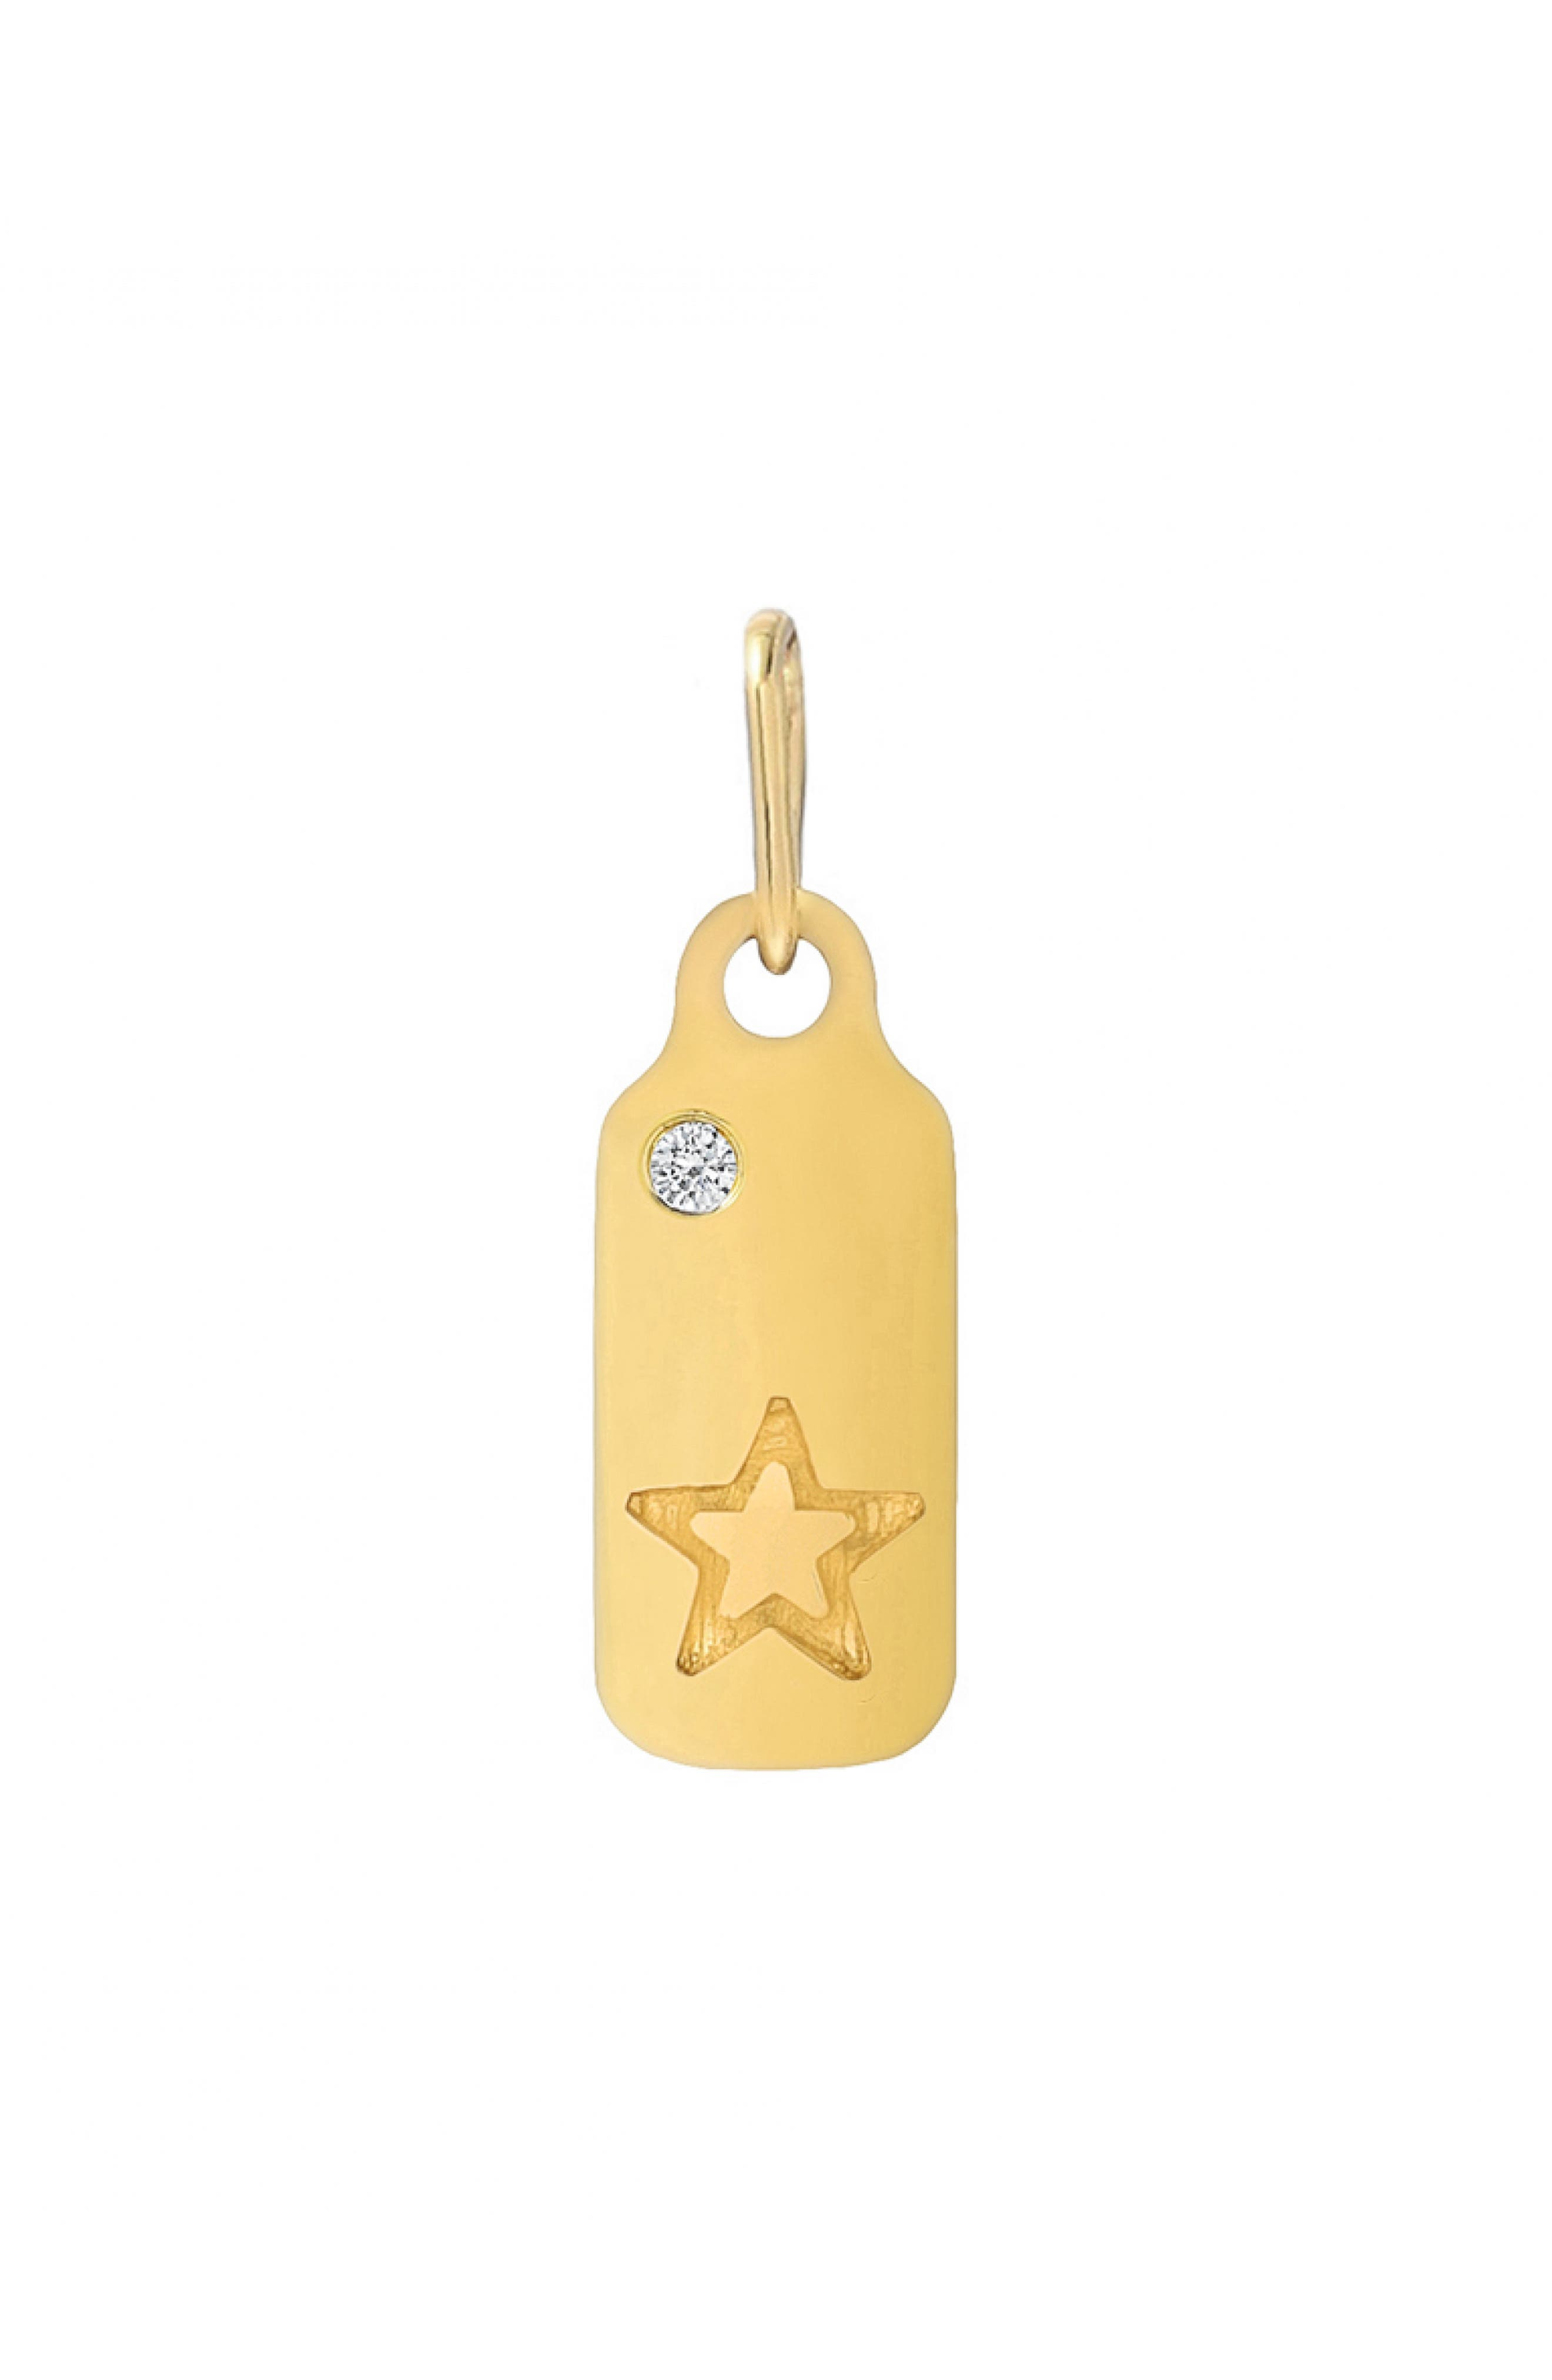 This trend-worthy dog tag handcrafted in California from 14-karat gold is illustrated with a star and a bezel-set diamond. Style Name: Mini Mini Jewels Icons - Star Diamond Dog Tag Pendant. Style Number: 5750656. Available in stores.